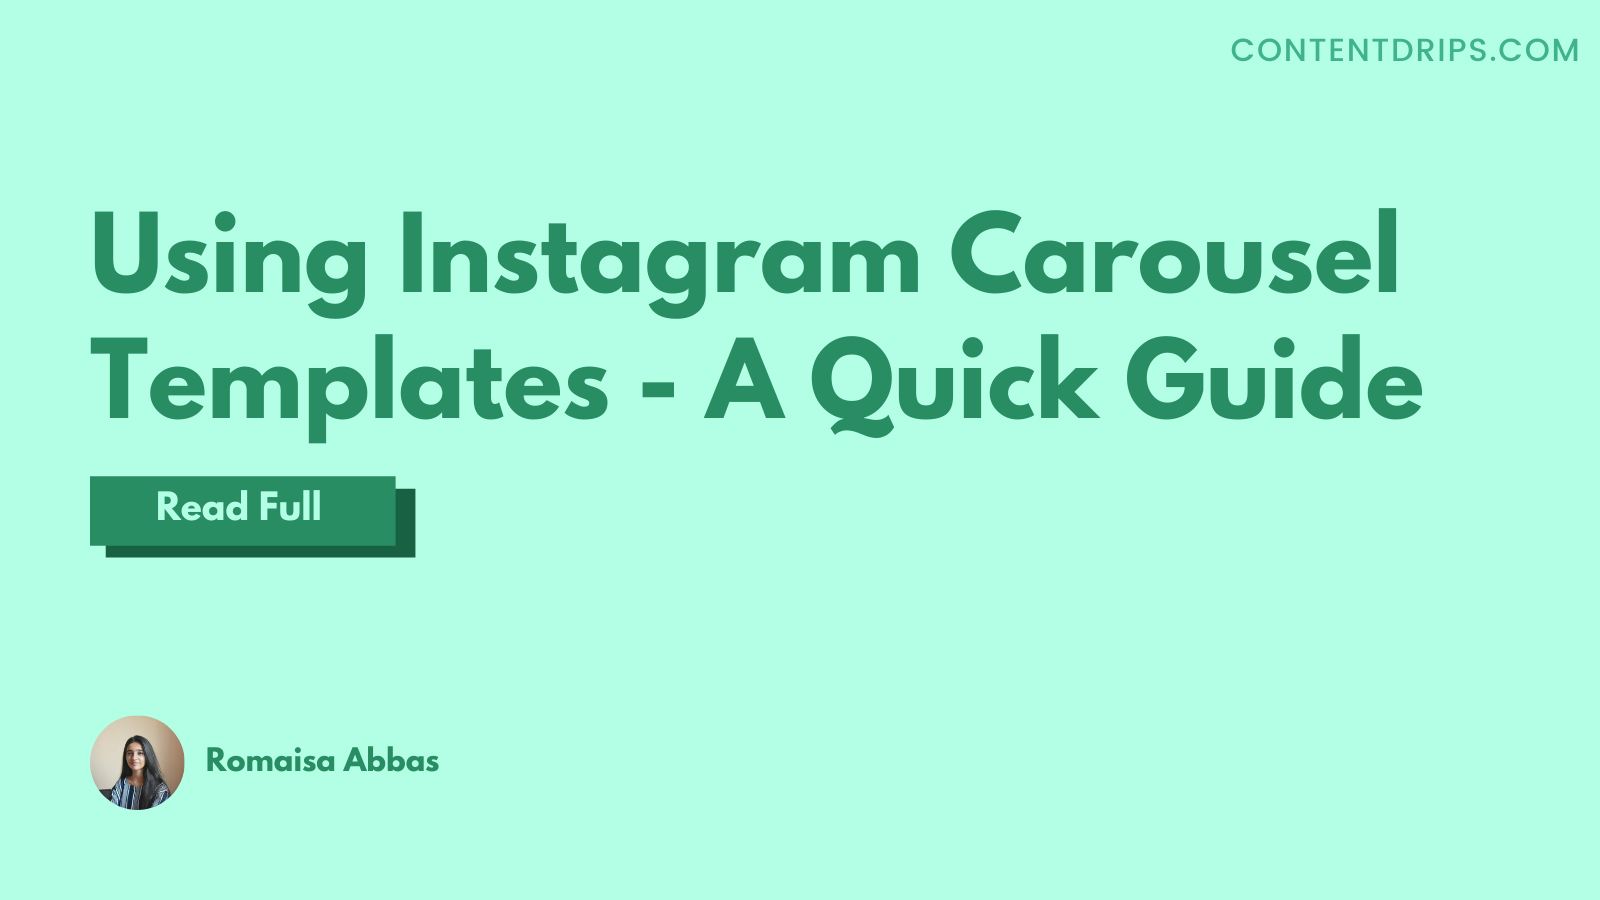 Using Instagram Carousel Templates: Quick Guide